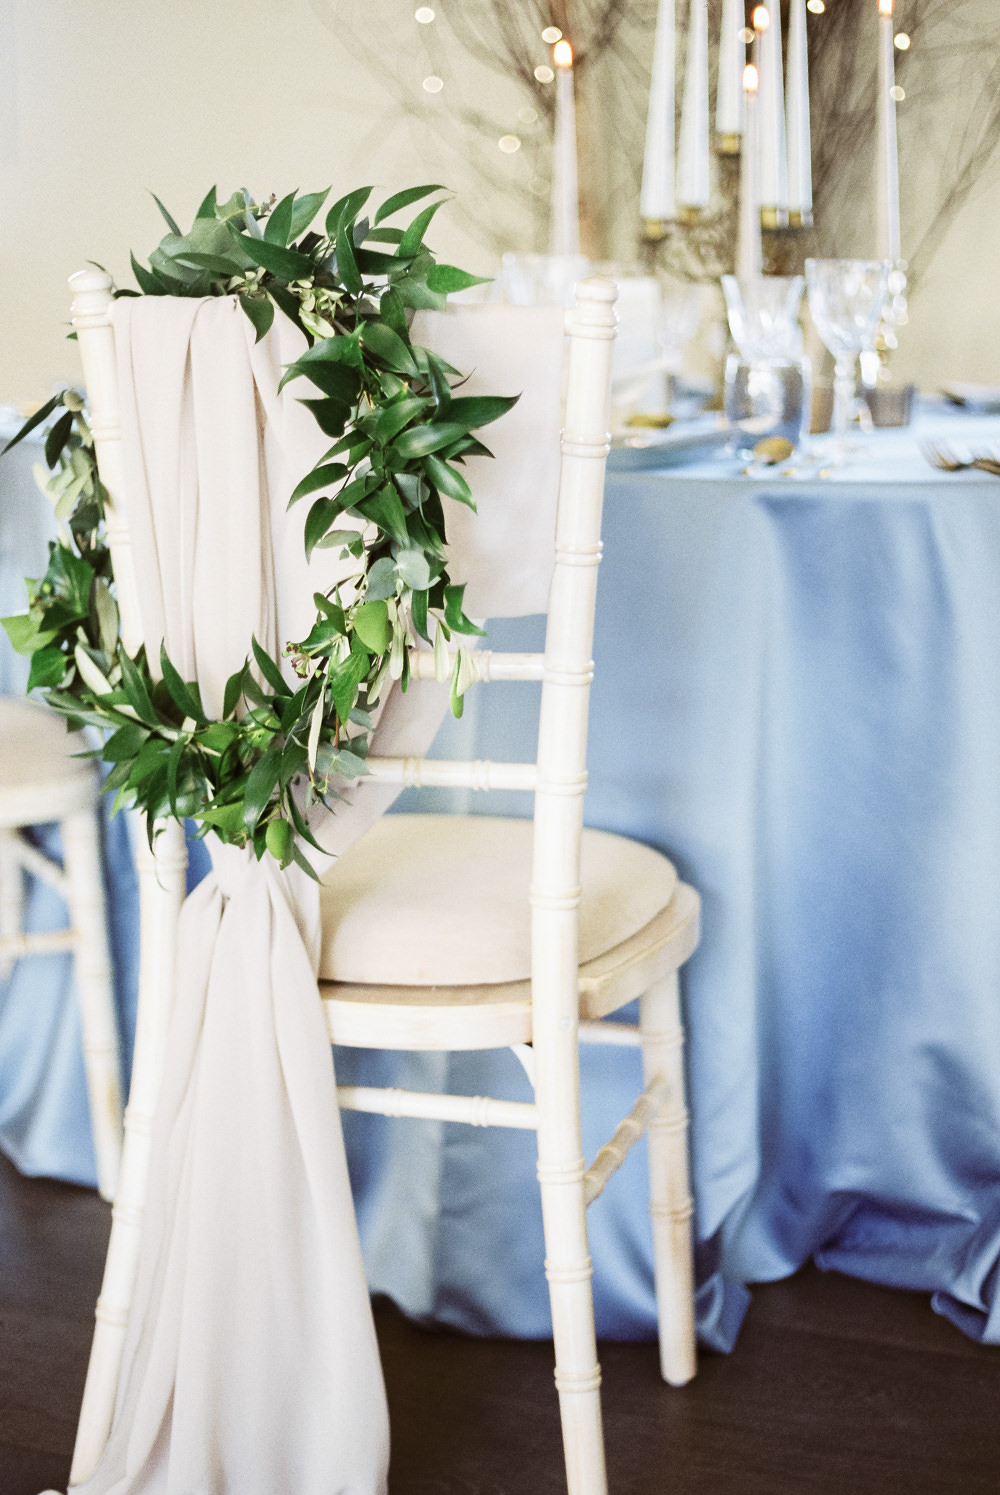 Greenery Foliage Wreath Hoop Chairs Fabric Winter Blue Barn Wedding Ideas Joanna Briggs Photography